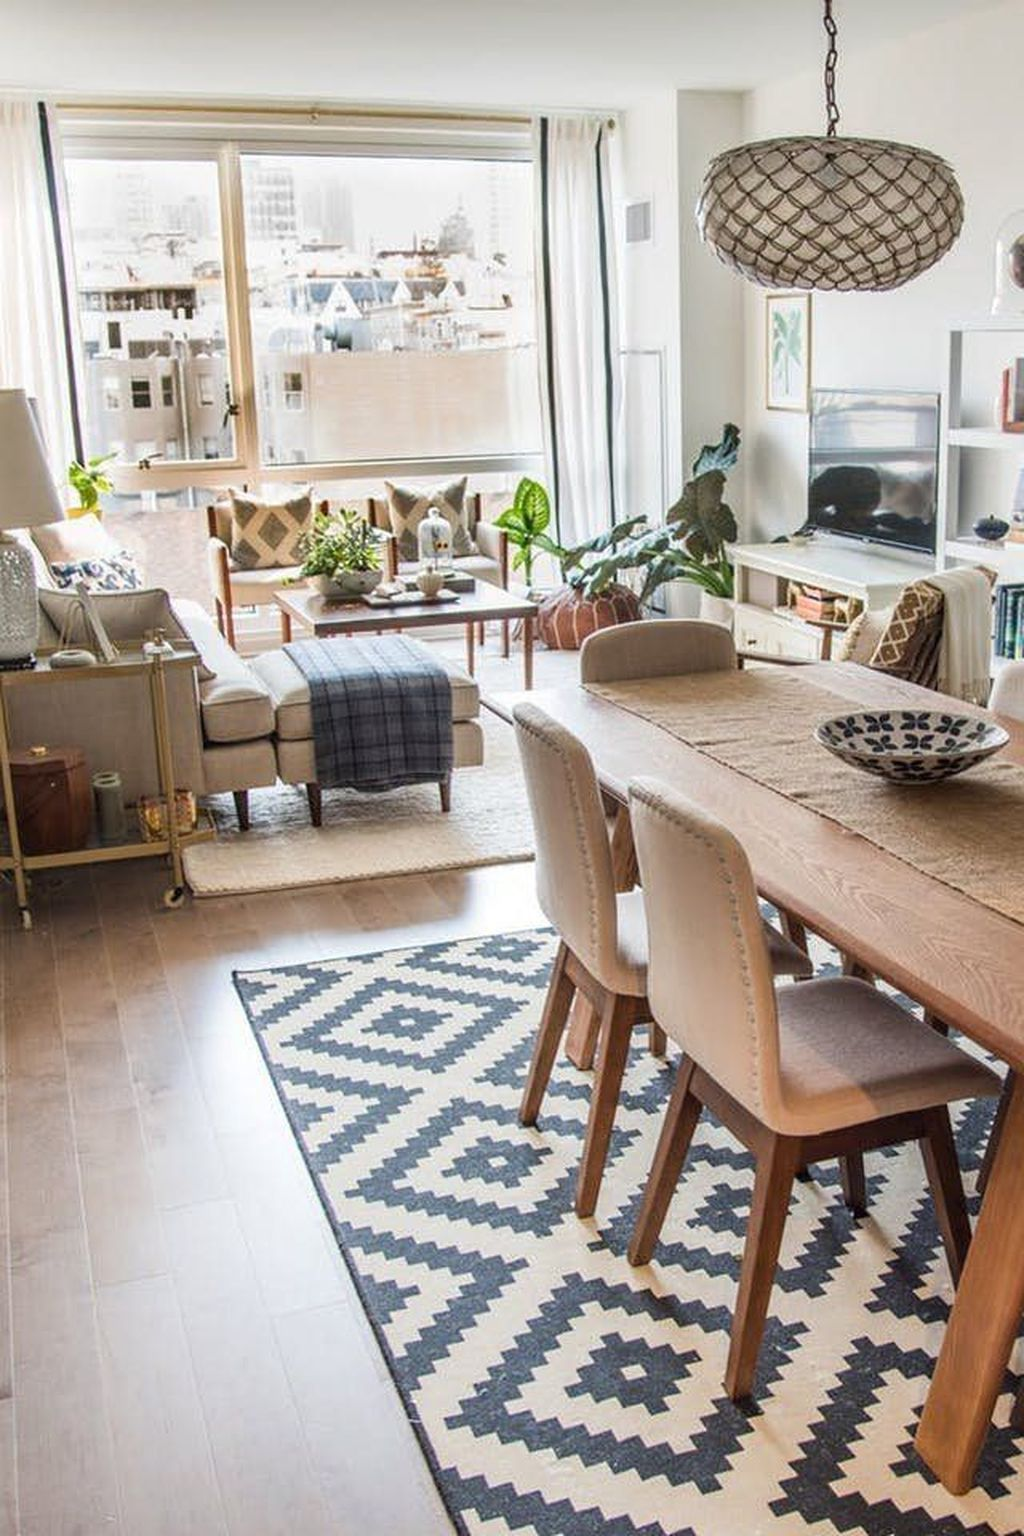 46 The Ideas Of A Dining Room Design In The Winter images